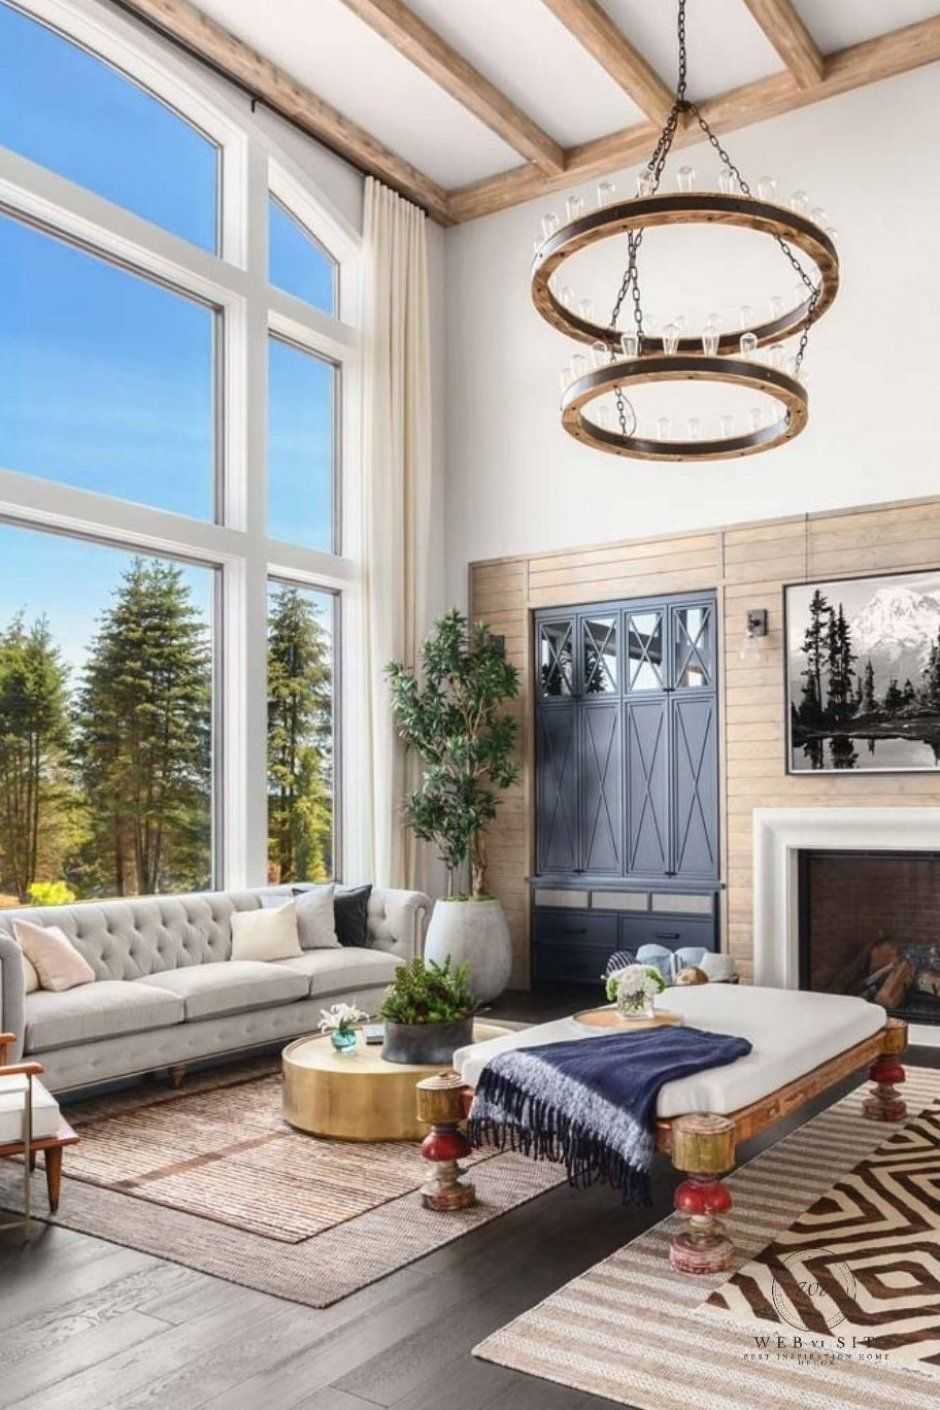 Black And White Living Room Living Room Layout Dancing In The Living Room Living Room In 2020 Living Room Sets Rustic Living Room Furniture 3 Piece Living Room Set #rustic #living #room #lighting